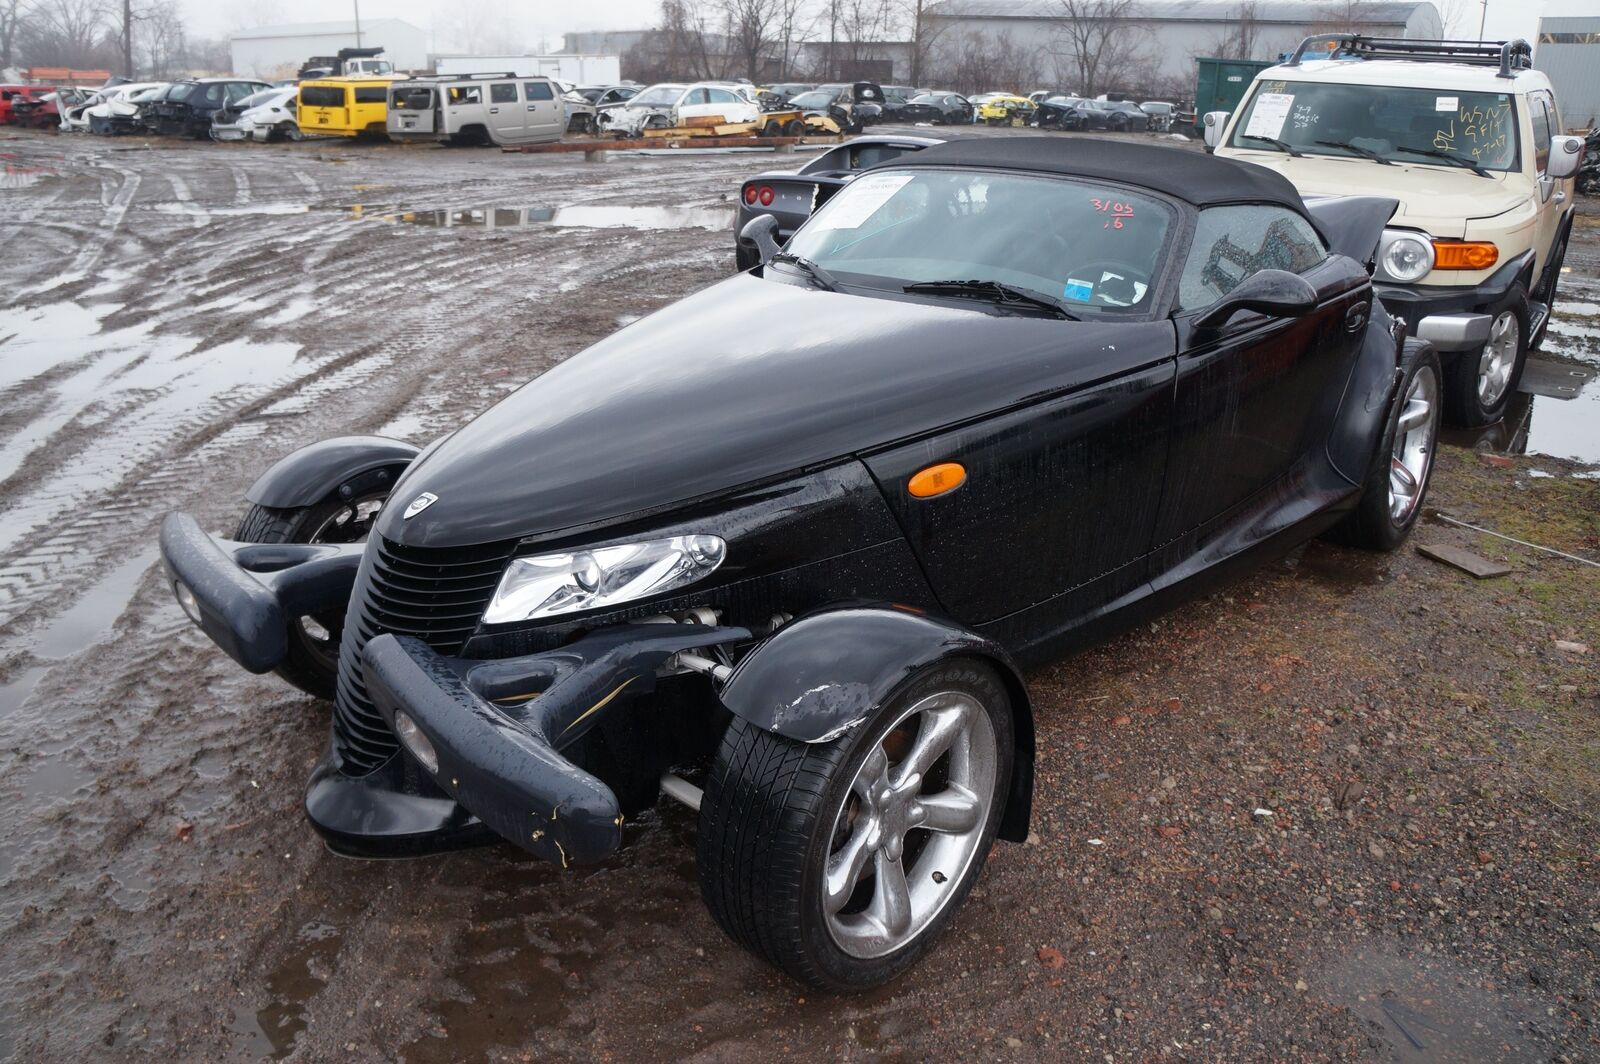 Plymouth Prowler Wiring Diagrams Schema Engine Diagram Blogs Ford Fusion